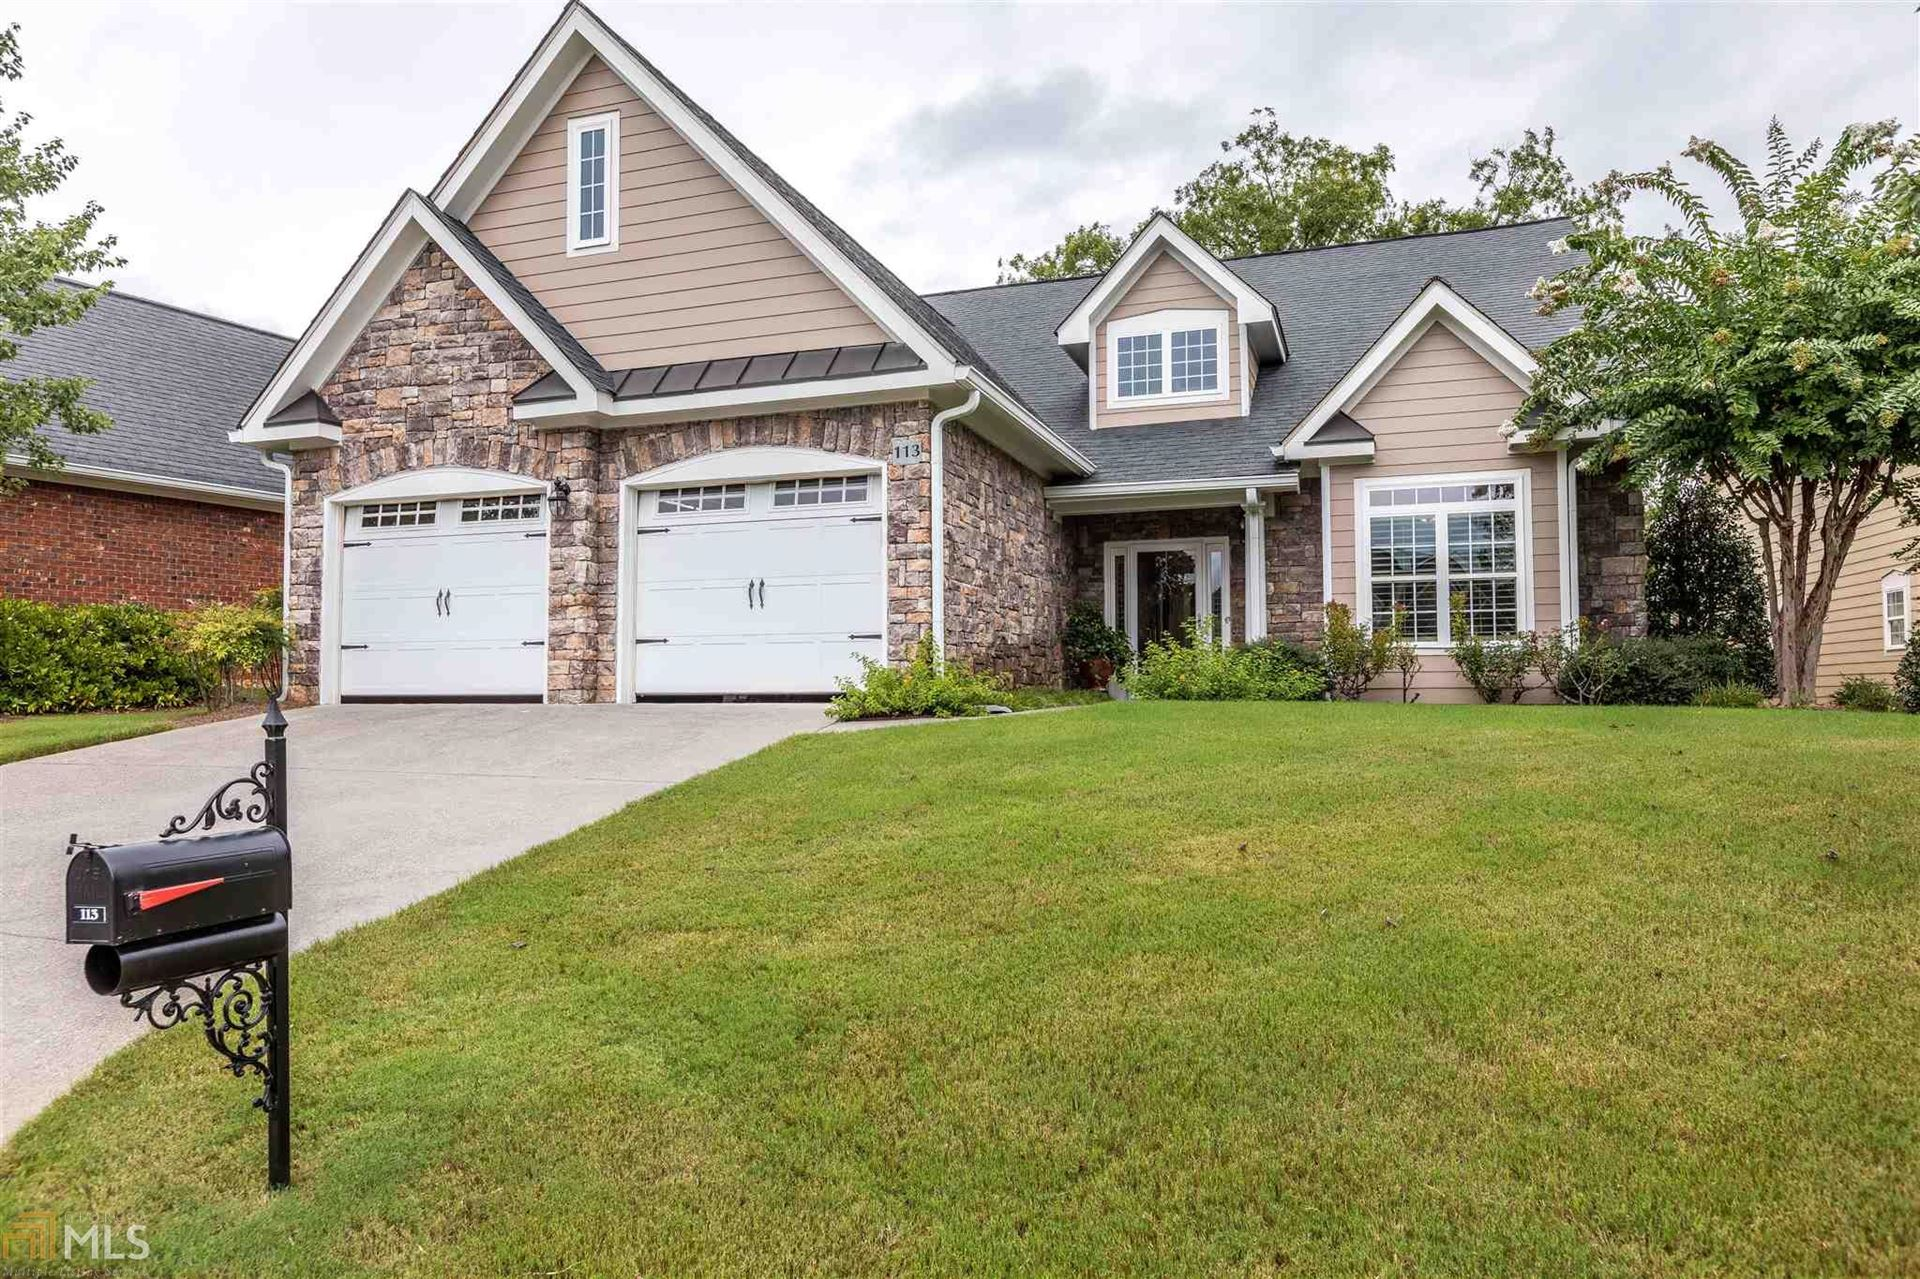 113 Carriage Way, Rome, GA 30161 - MLS#: 8848449